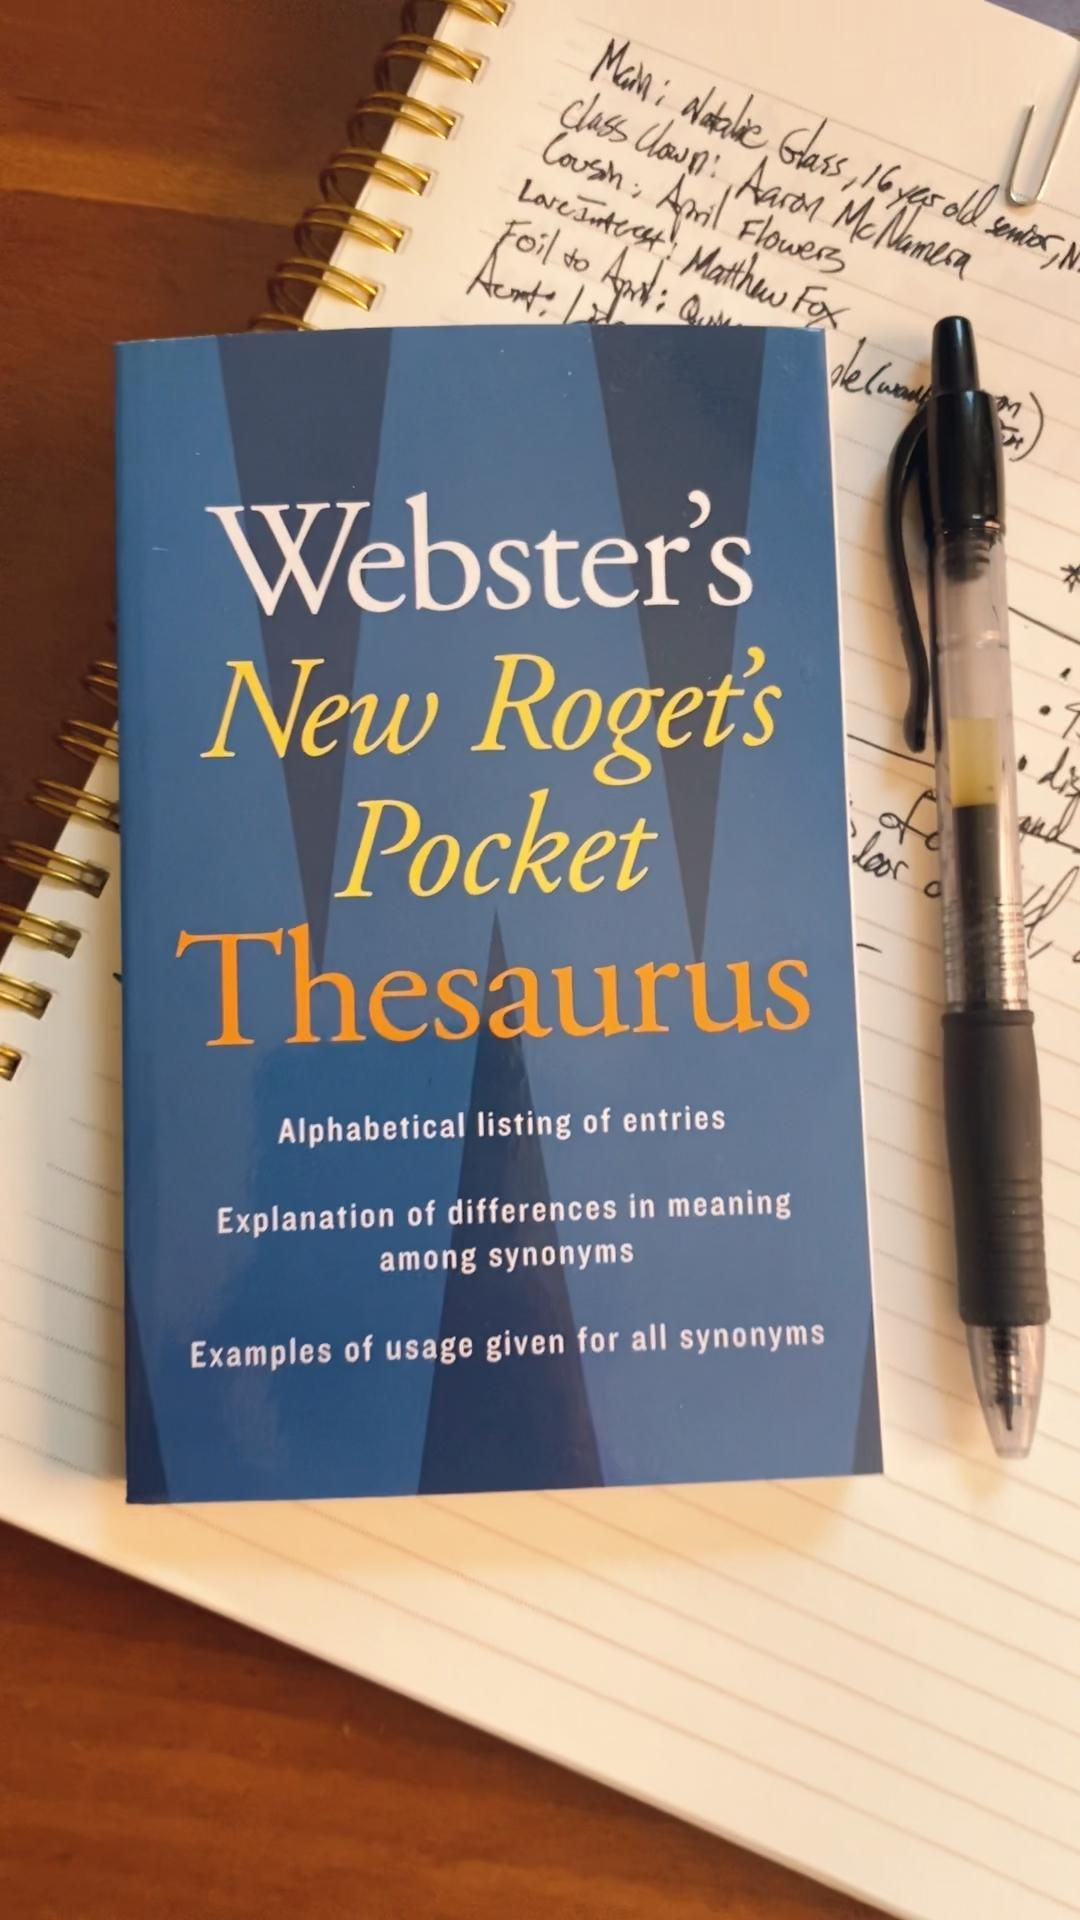 topic thesaurus by James Wieland | Author, Bookstagrammer, Freelance Writer